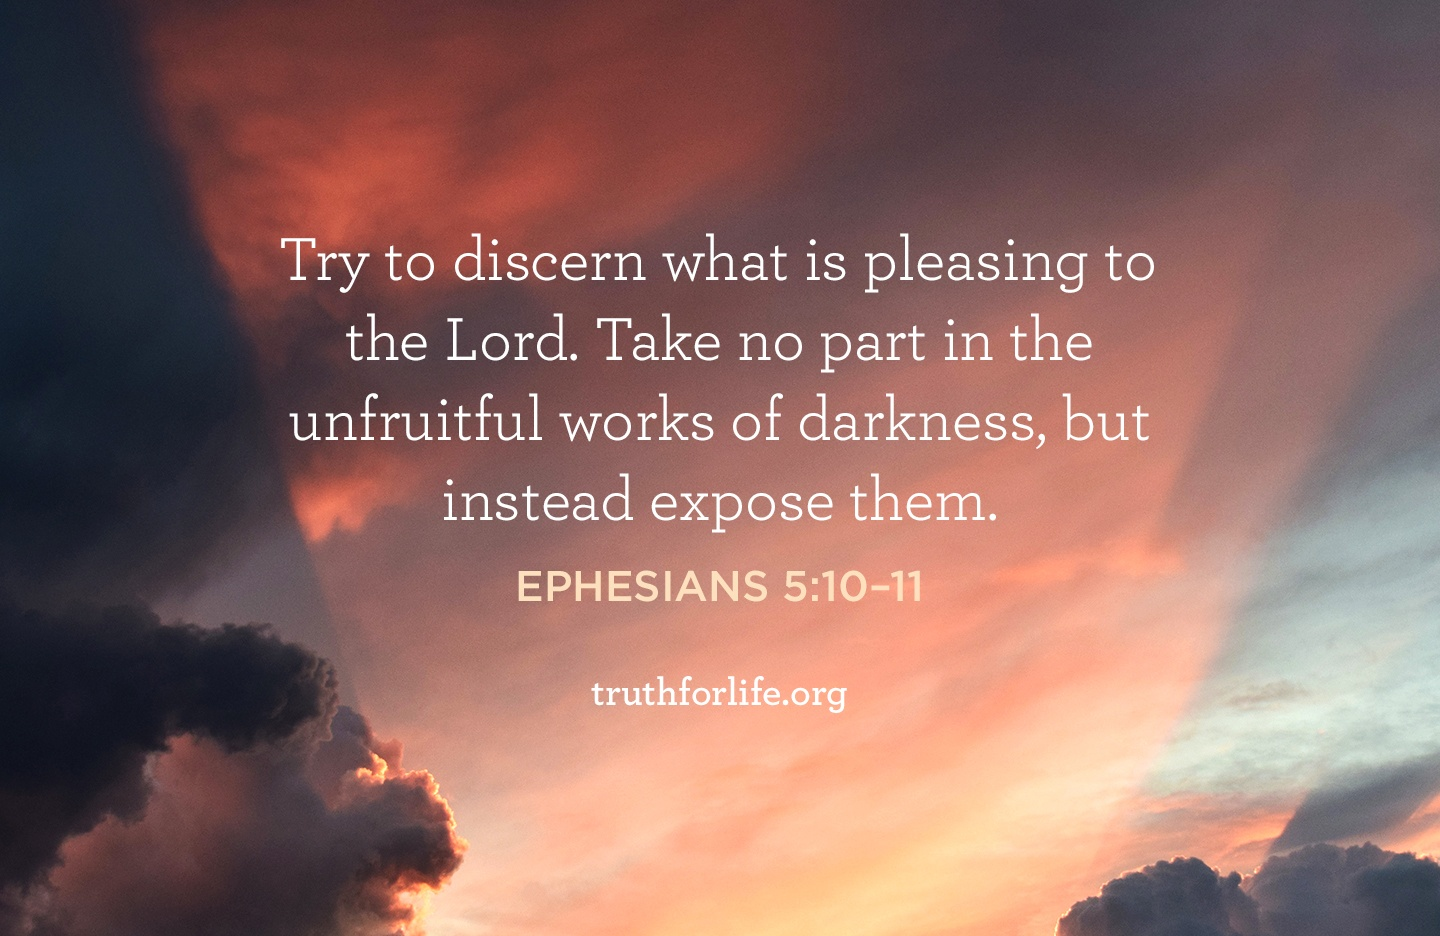 Try to discern what is pleasing to the Lord. Take no part in the unfruitful works of darkness, but instead expose them.  - Ephesians 5:10–11